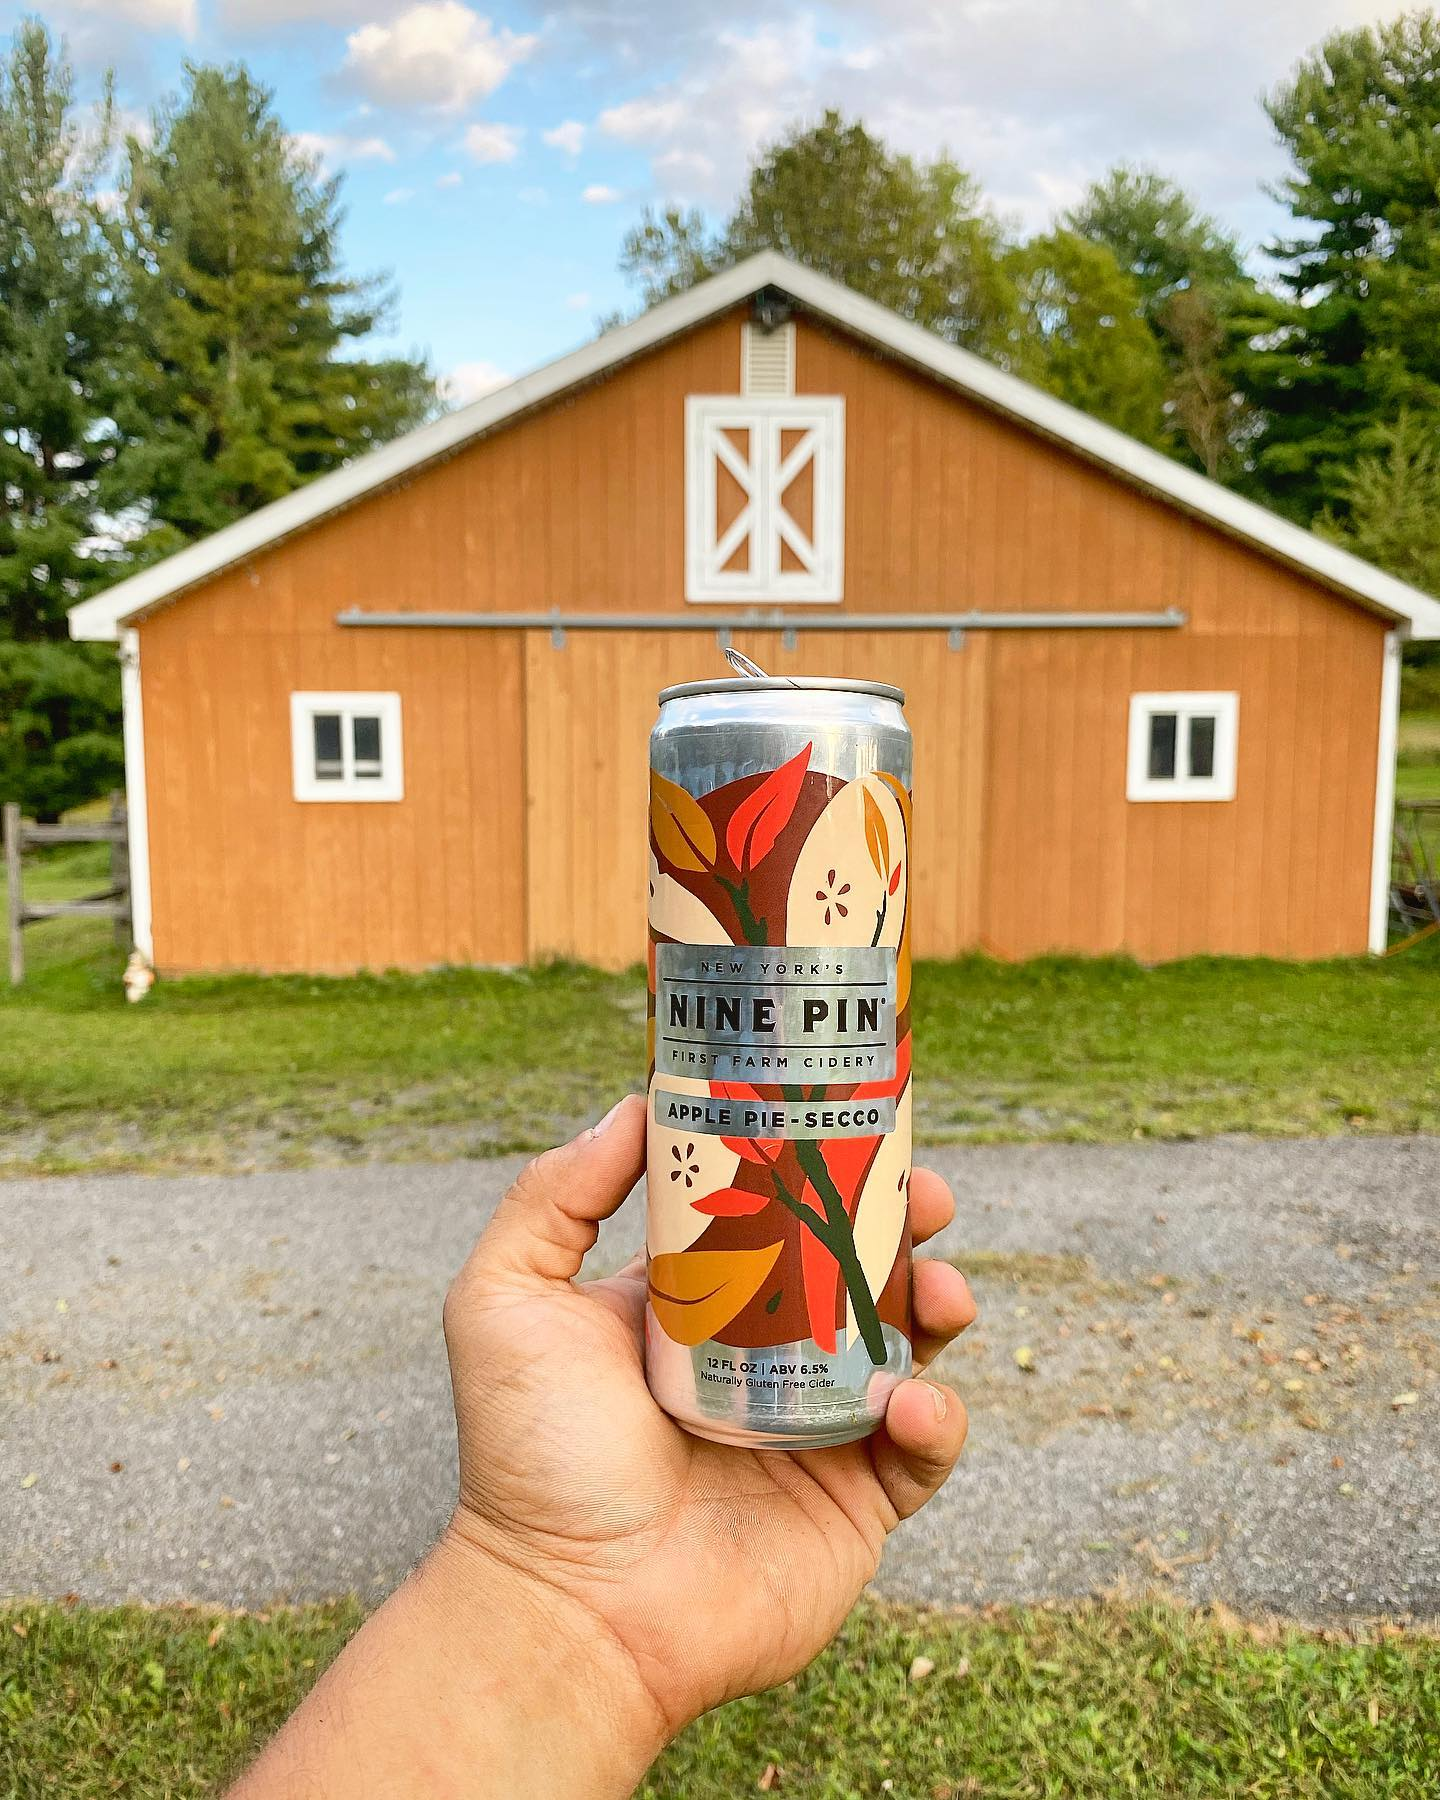 Can of Nine Pin Apple Pie-Secco can in front of red barn.